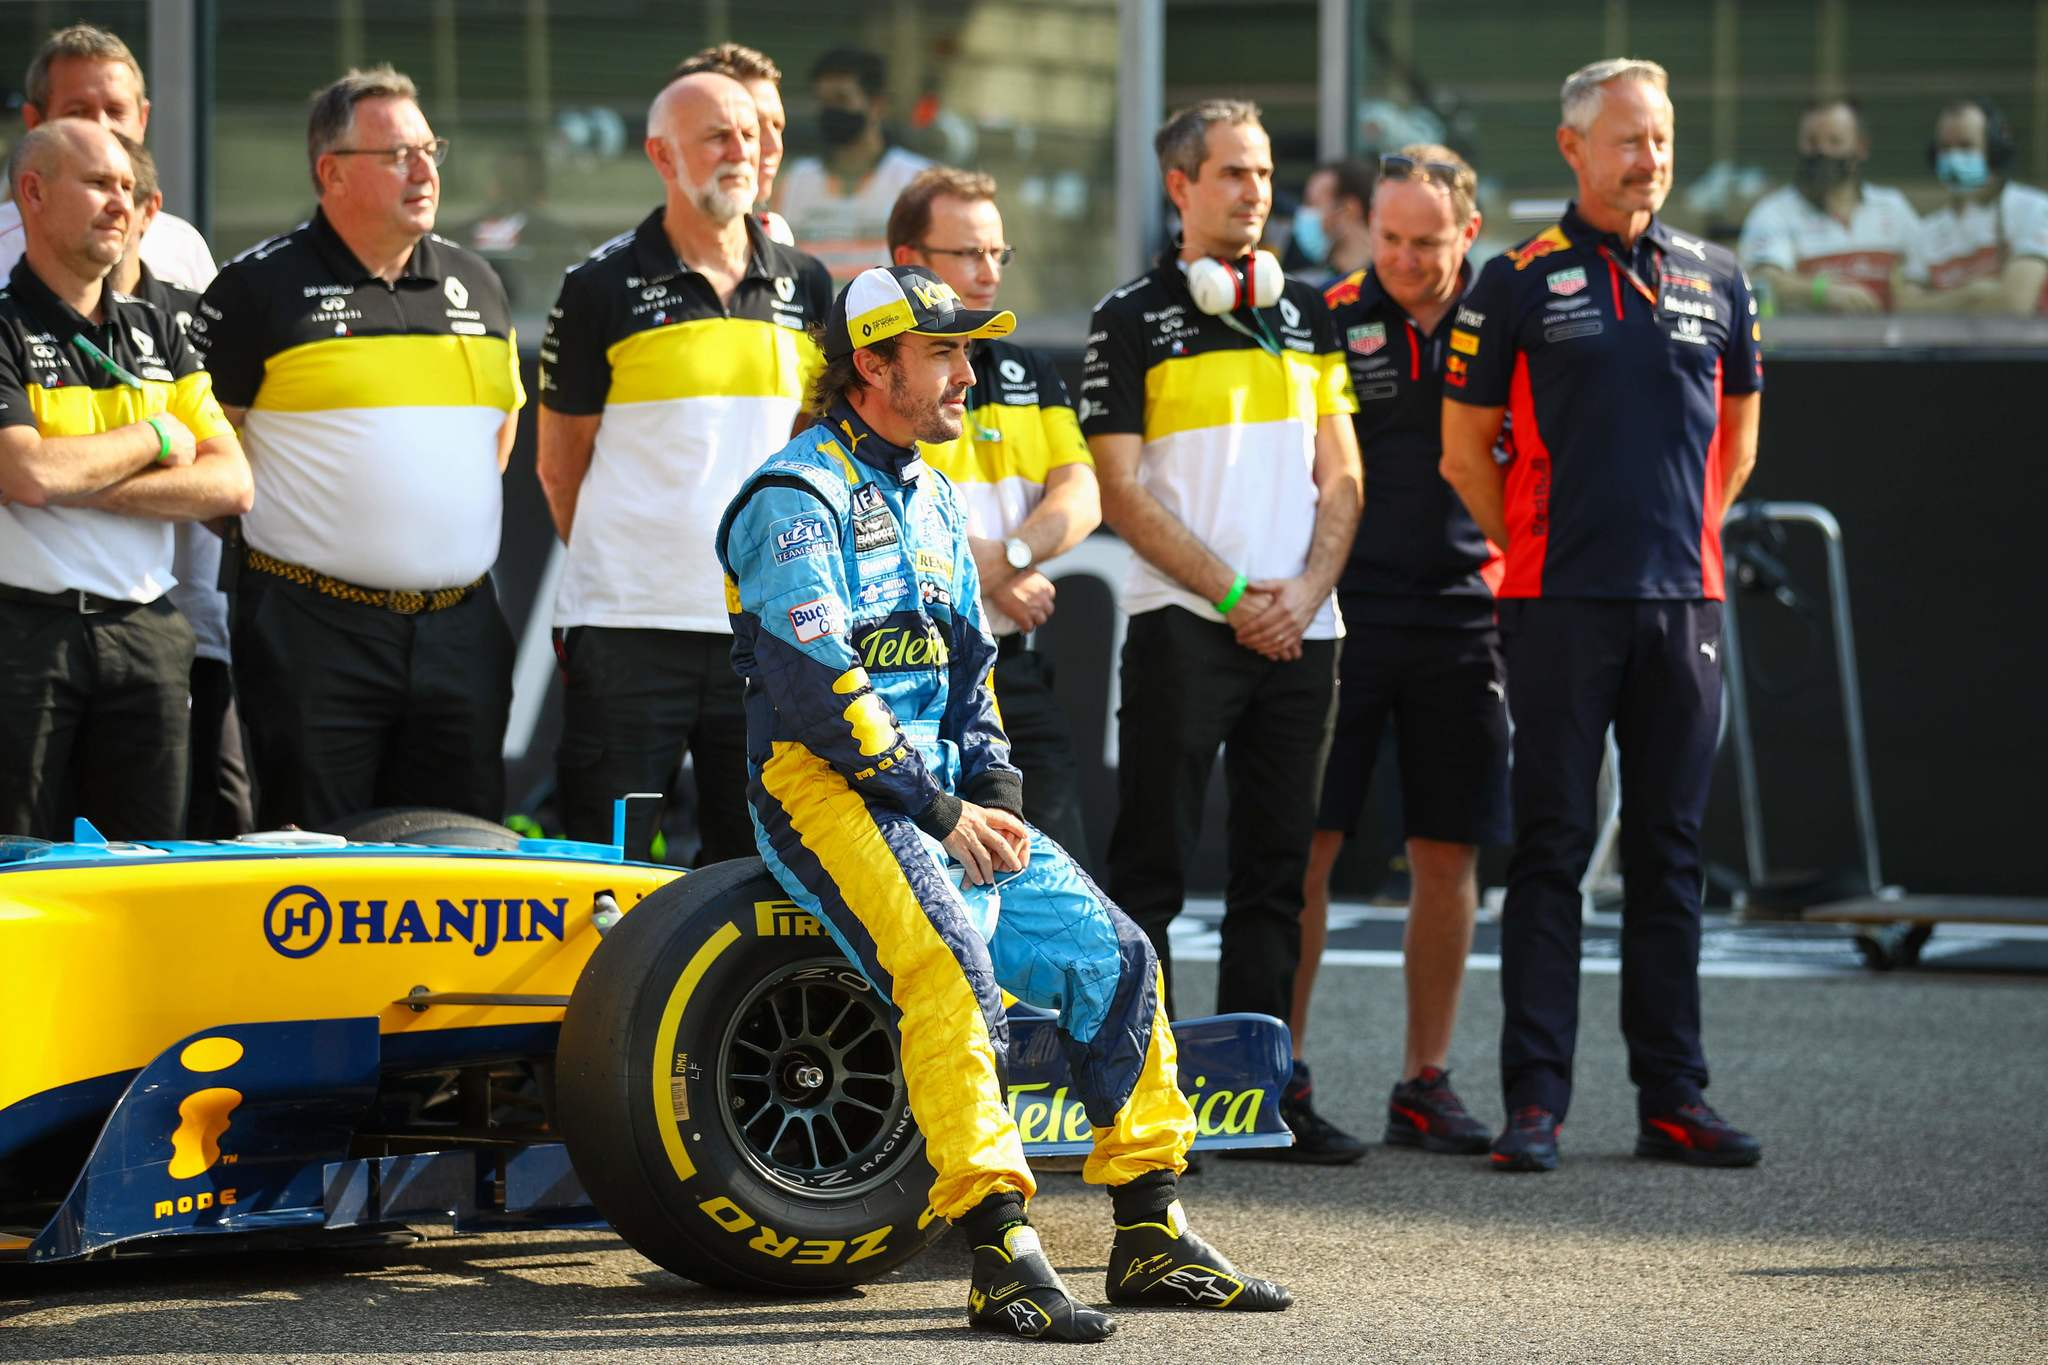 Renaults Spanish driver lt;HIT gt;Fernando lt;/HIT gt; lt;HIT gt;Alonso lt;/HIT gt; sits on the wheel of his Renault R25 car ahead of his demonstration laps prior to the Abu Dhabi Formula One Grand Prix at the Yas Marina Circuit in the Emirati city of Abu Dhabi on December 13, 2020. (Photo by Bryn Lennon / POOL / AFP)